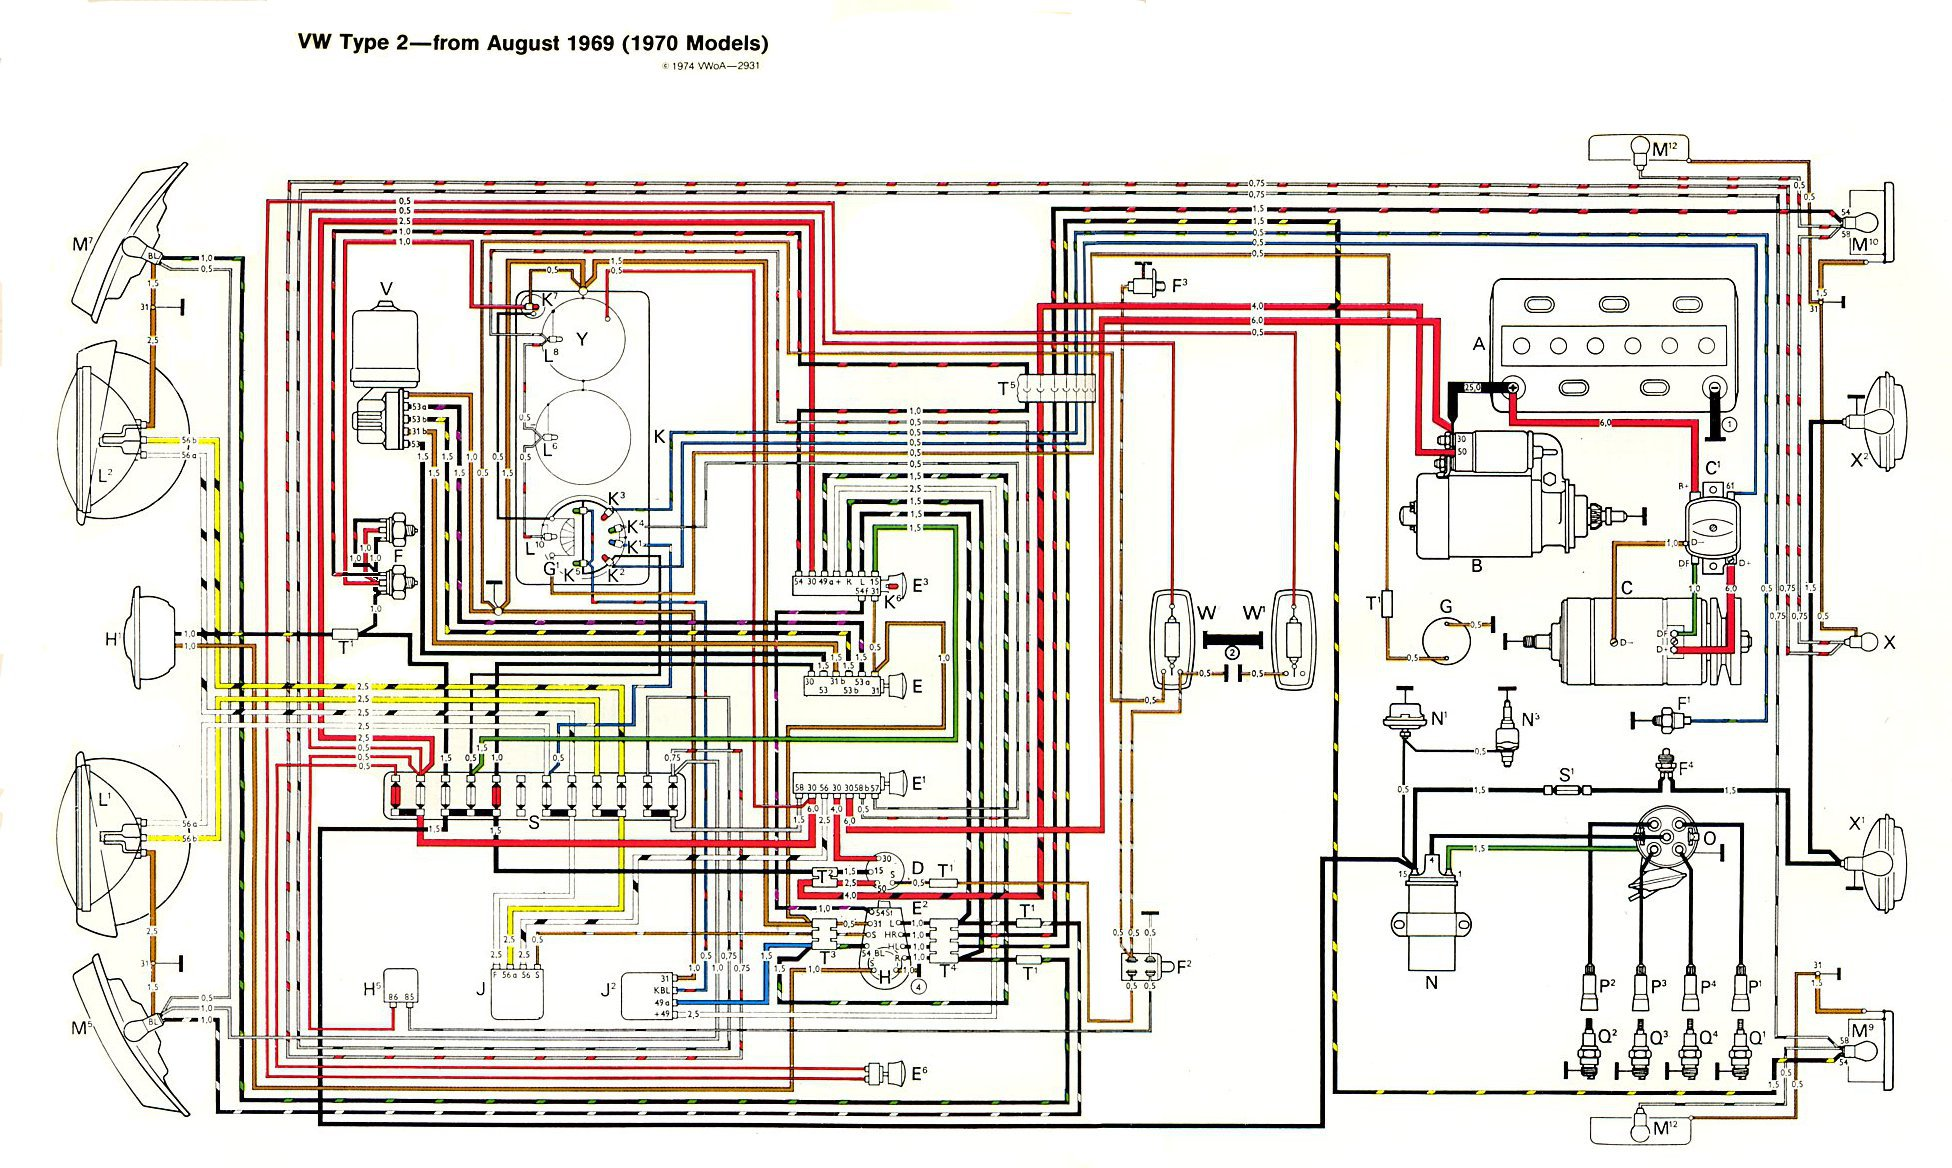 thesamba com type 2 wiring diagrams rh thesamba com Basic Electrical Wiring Diagrams Light Switch Wiring Diagram